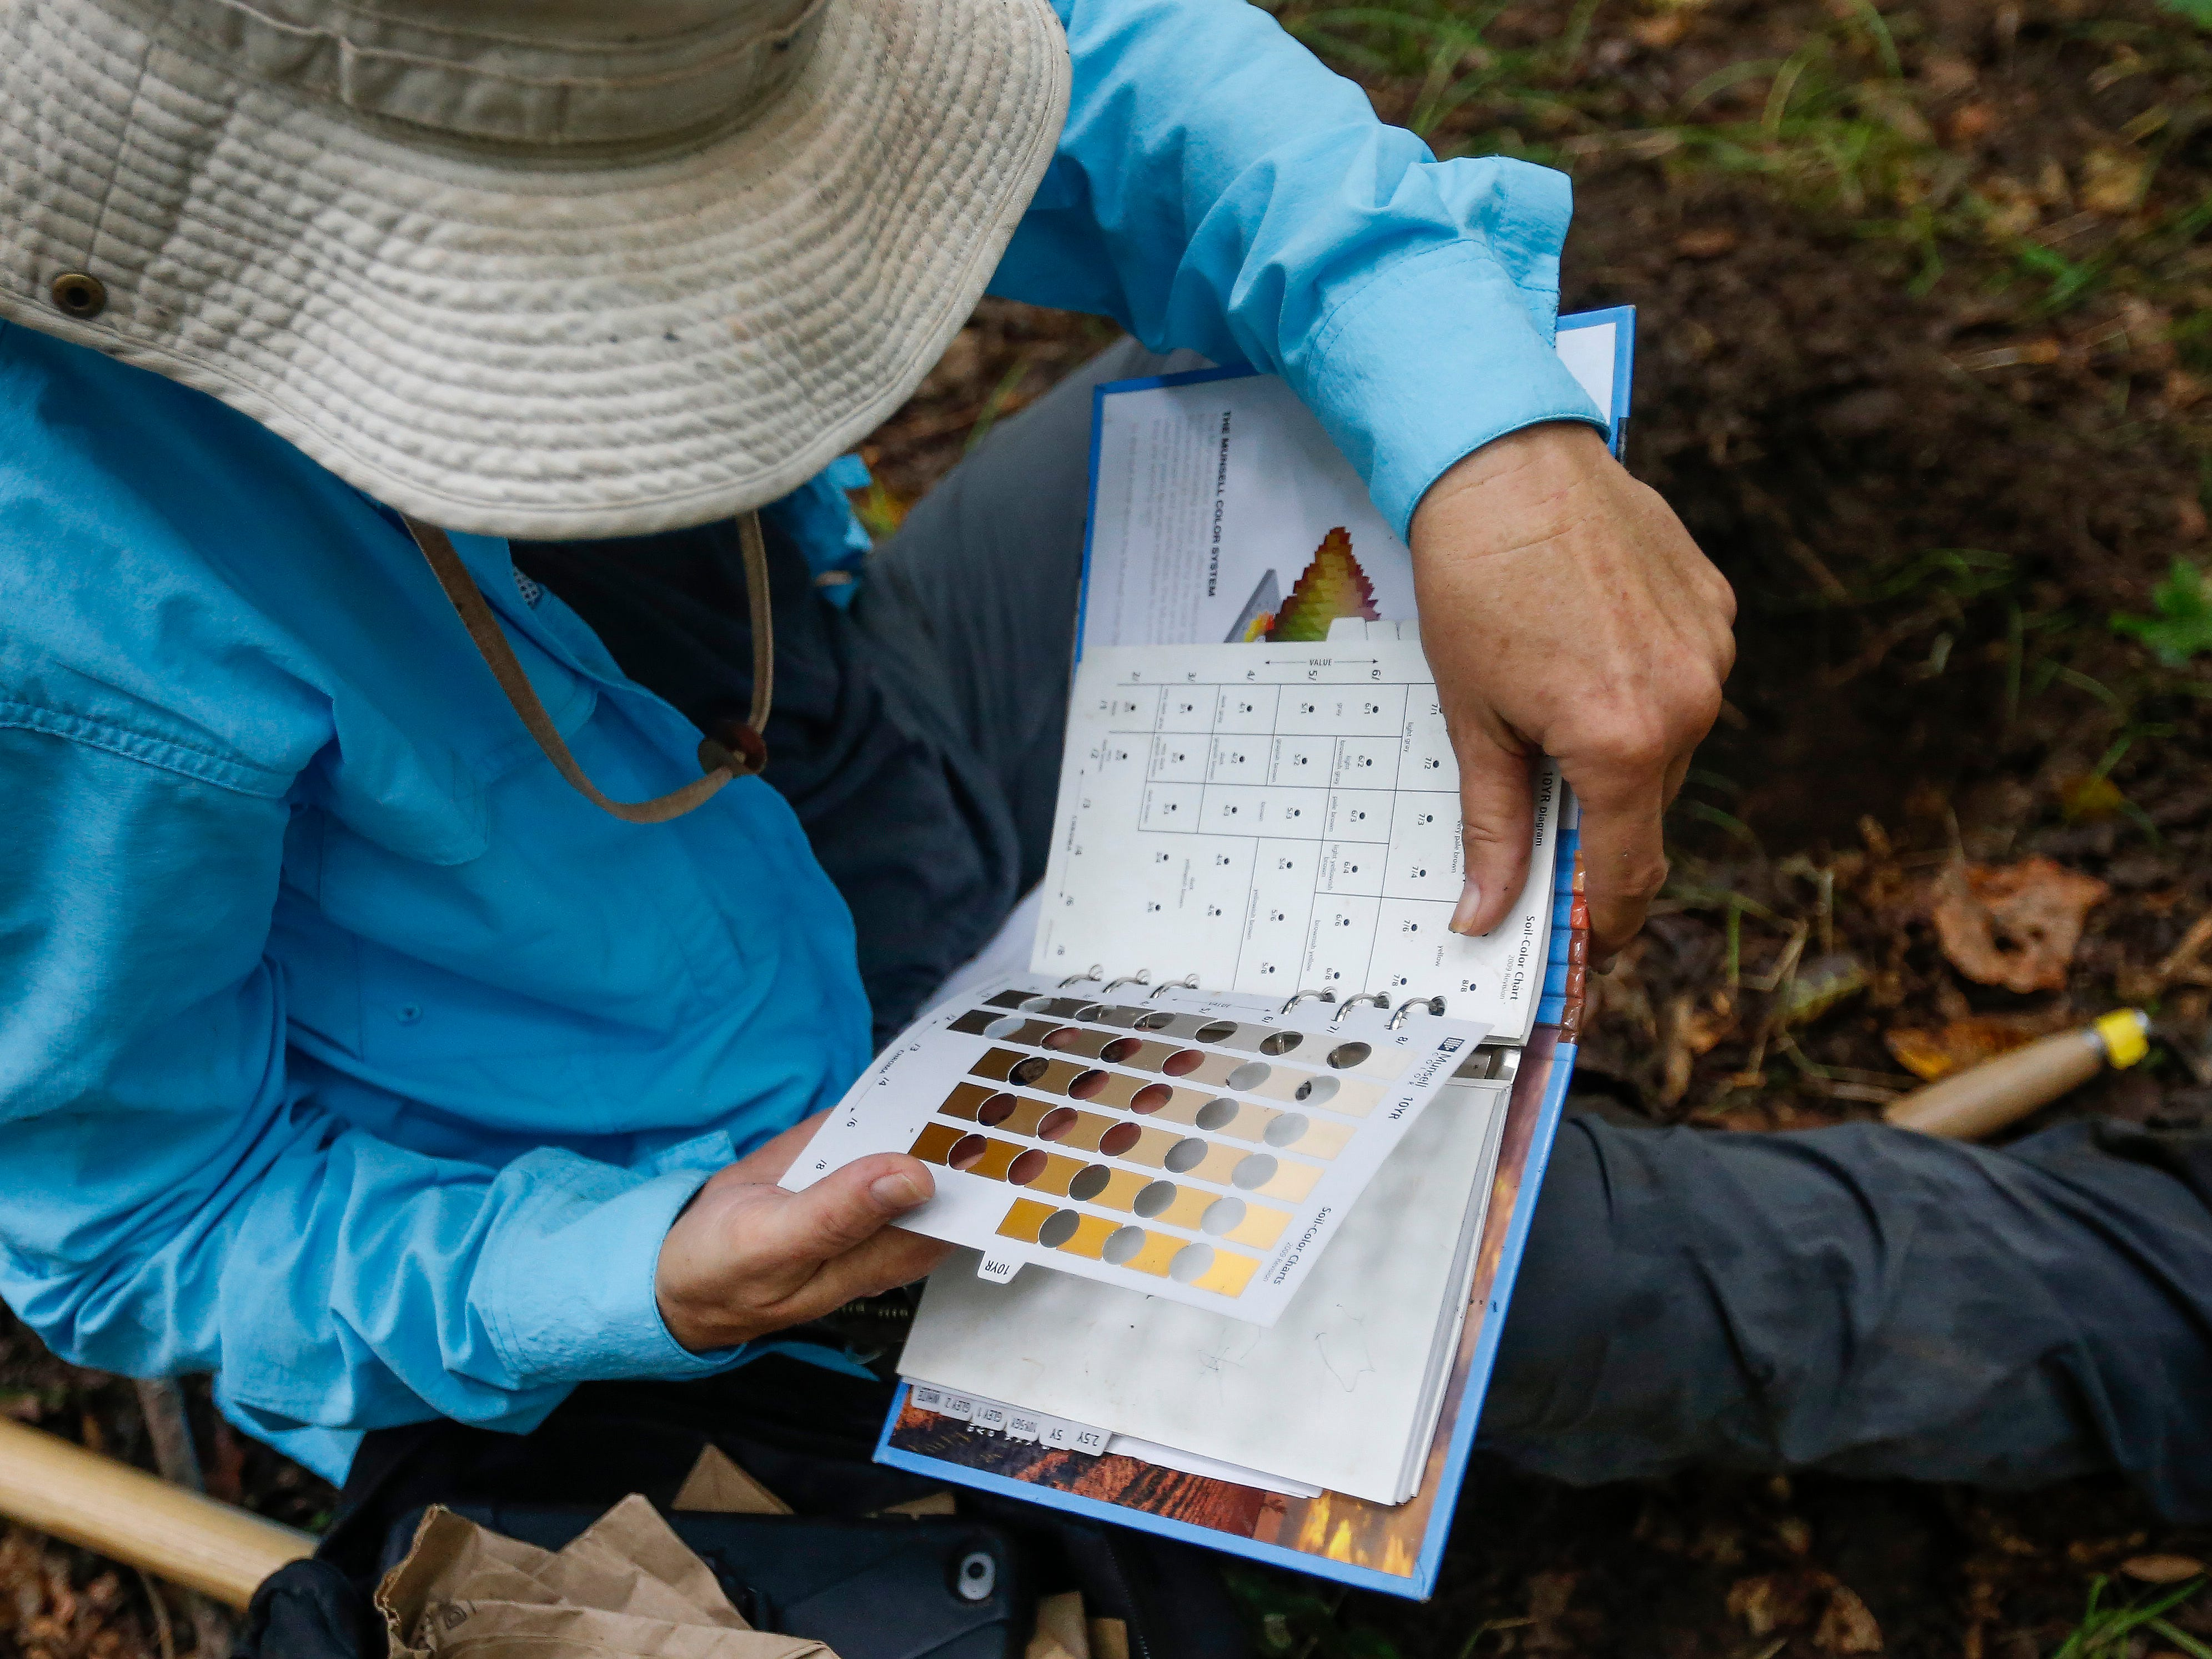 Survey team leader Robin Jorcke notes the color of dirt in a hole she dug at a survey site along Lake Taneycomo on Thursday, Aug. 30, 2018.